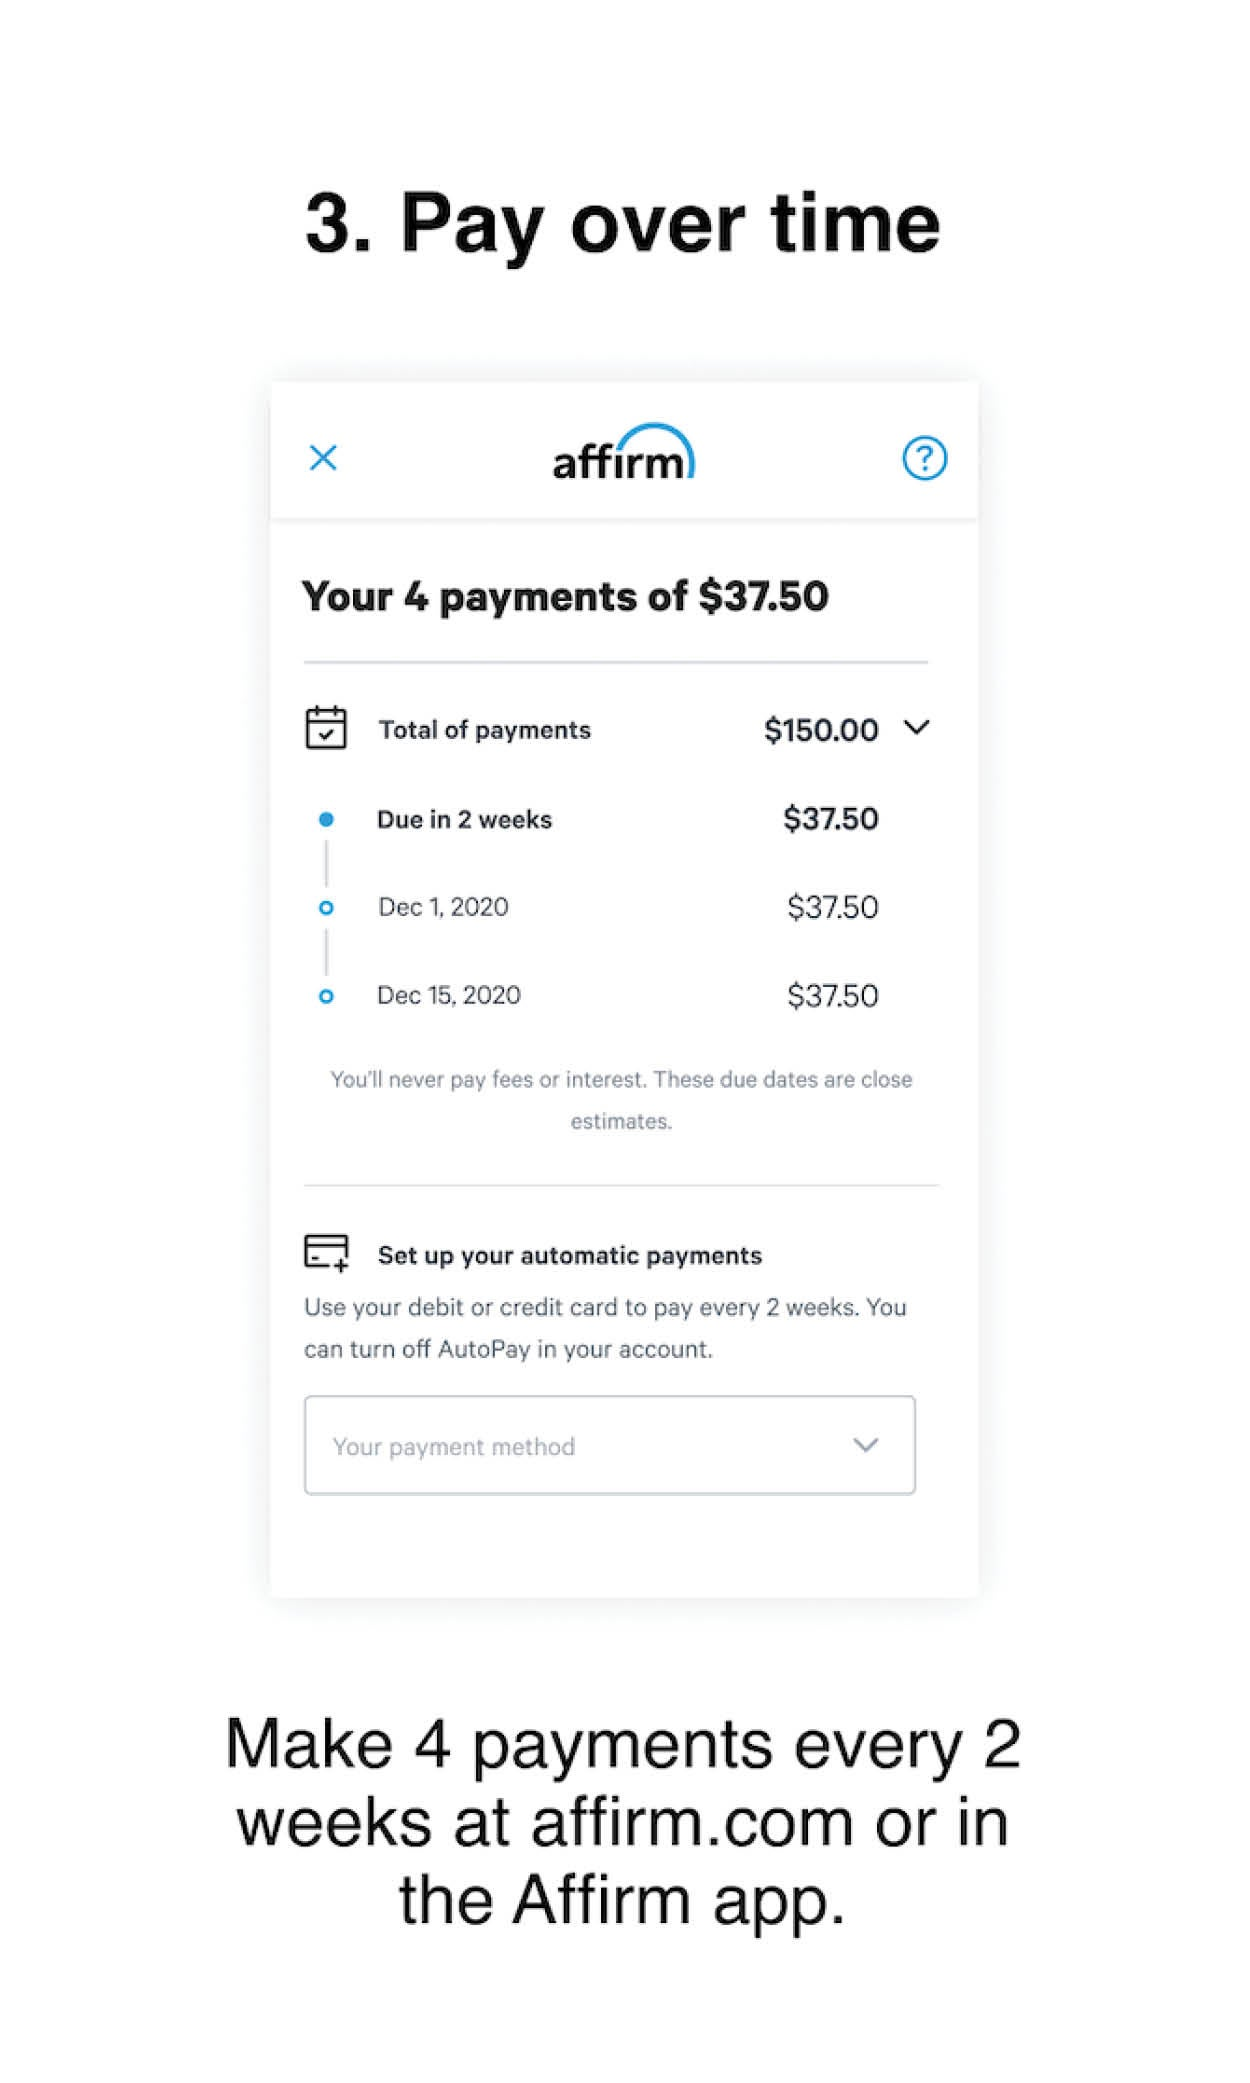 Make 4 payments every 2 weeks at affirm.com or in the Affirm app